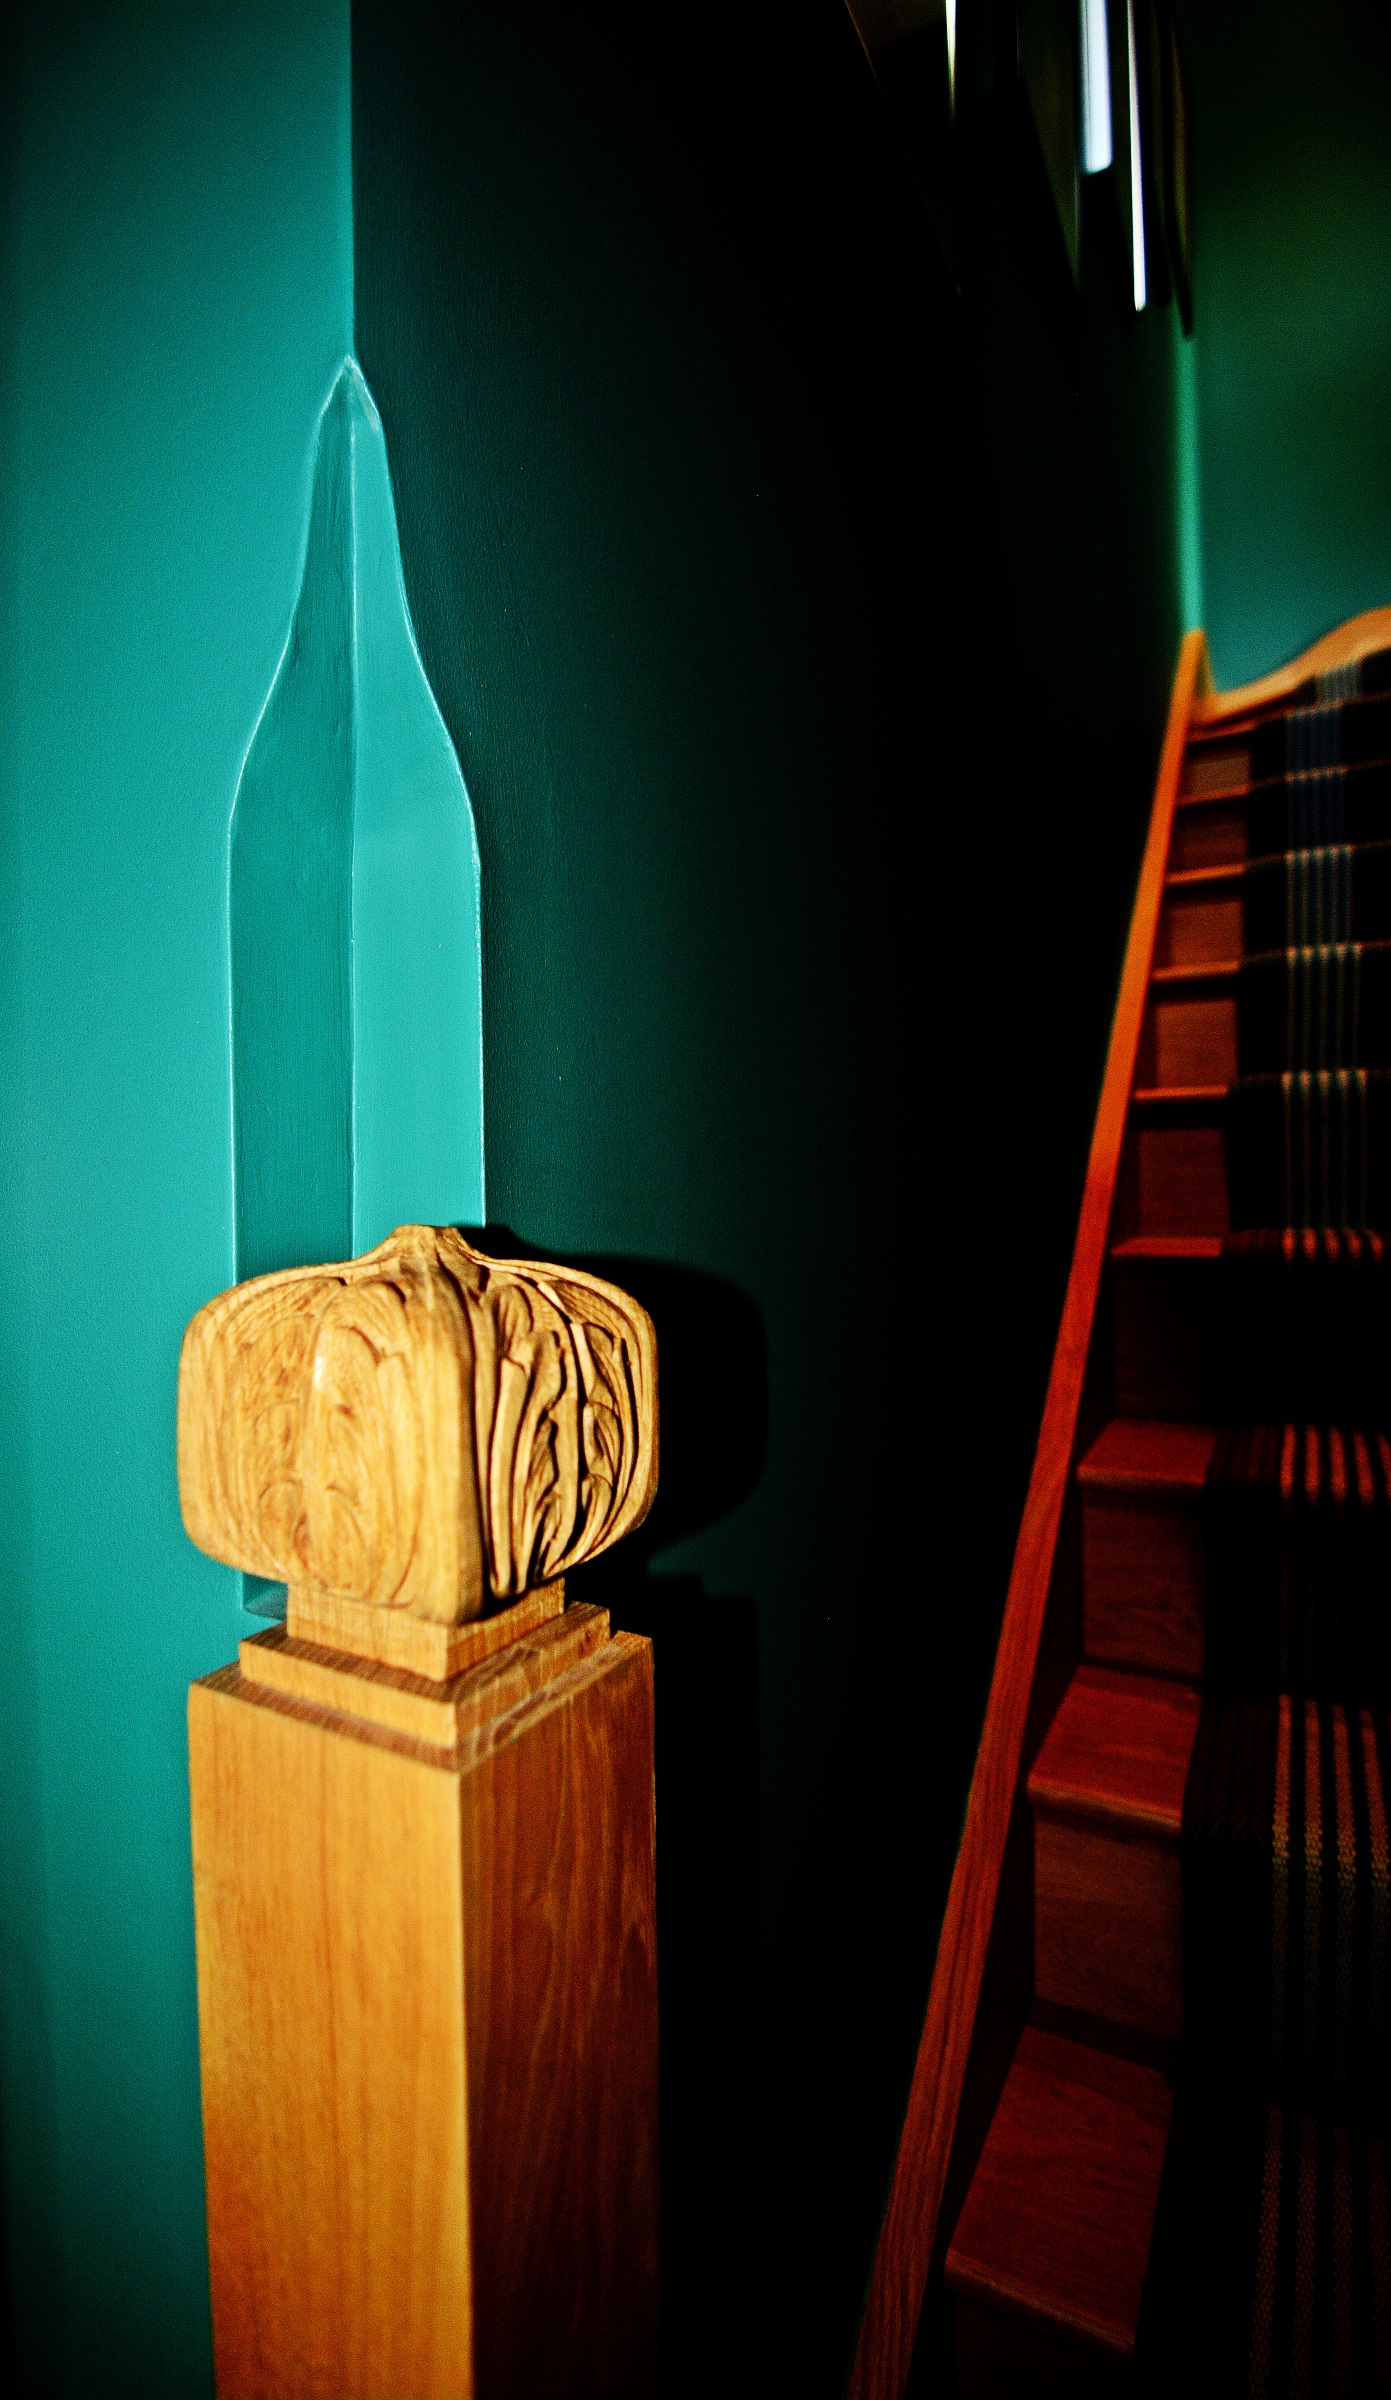 New newel post details